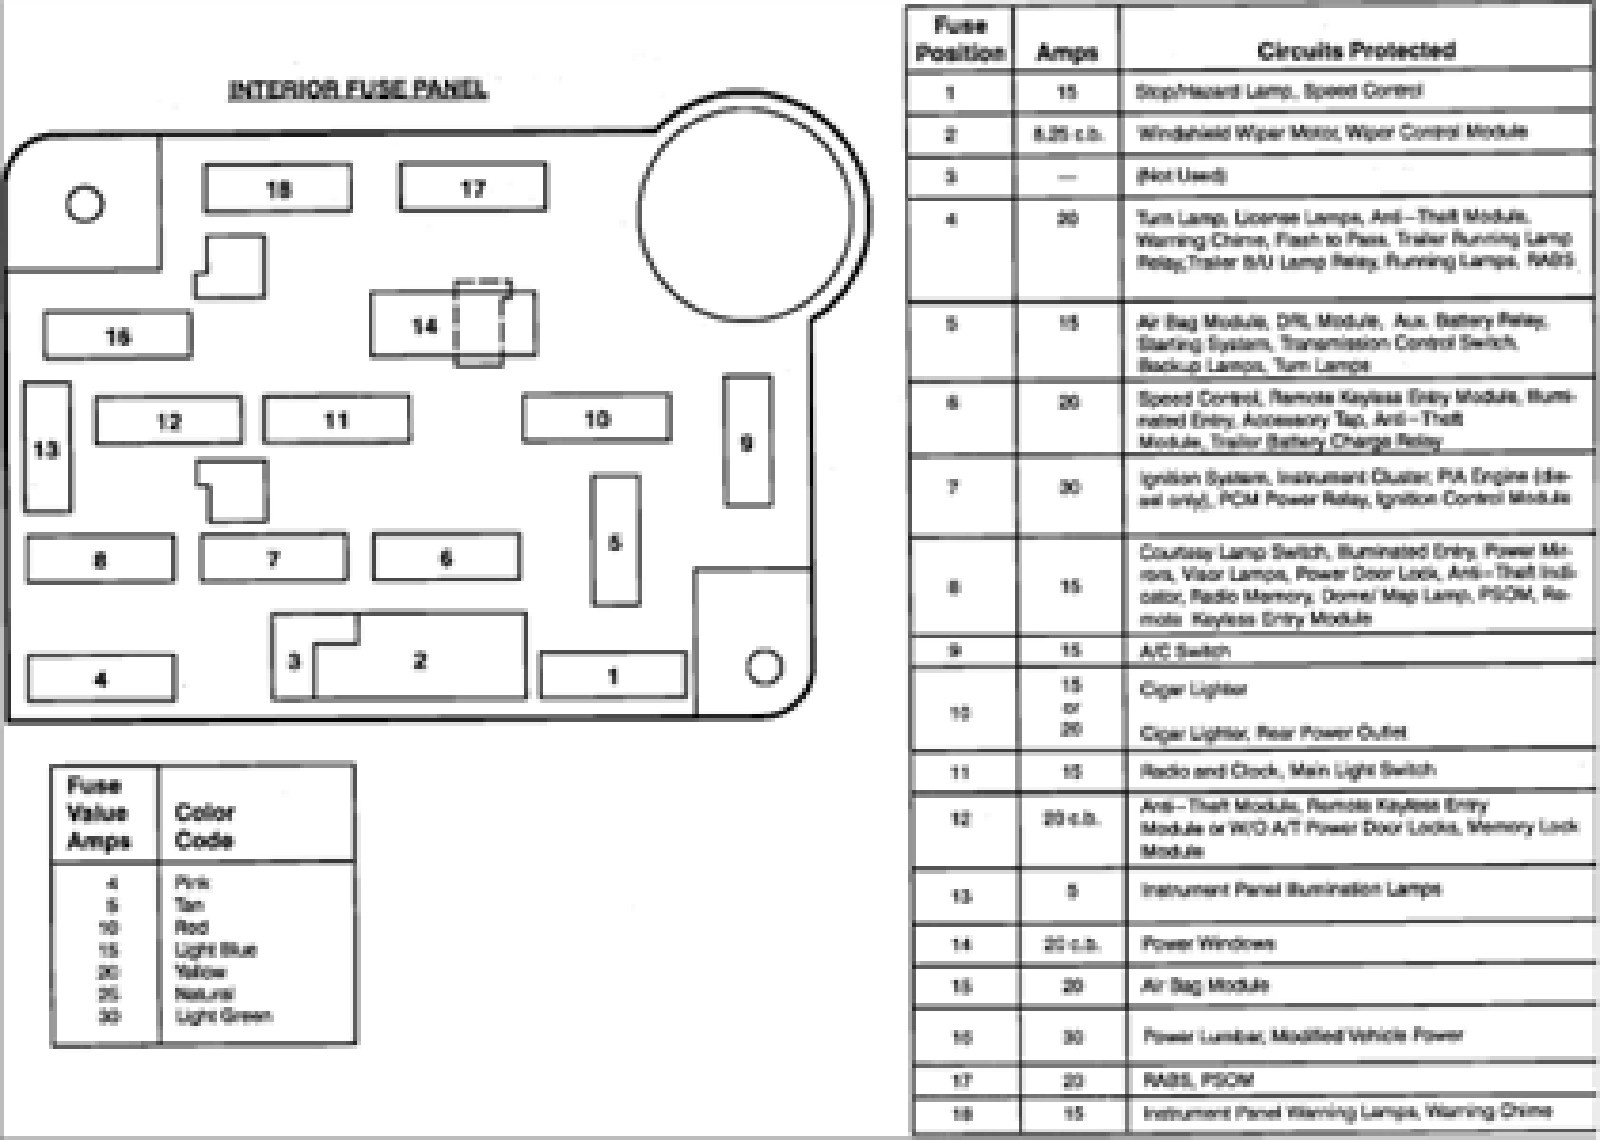 hight resolution of 2004 wrangler fuse diagram wiring library fuse box diagram moreover ford 4 6 timing chain on 1997 lincoln town